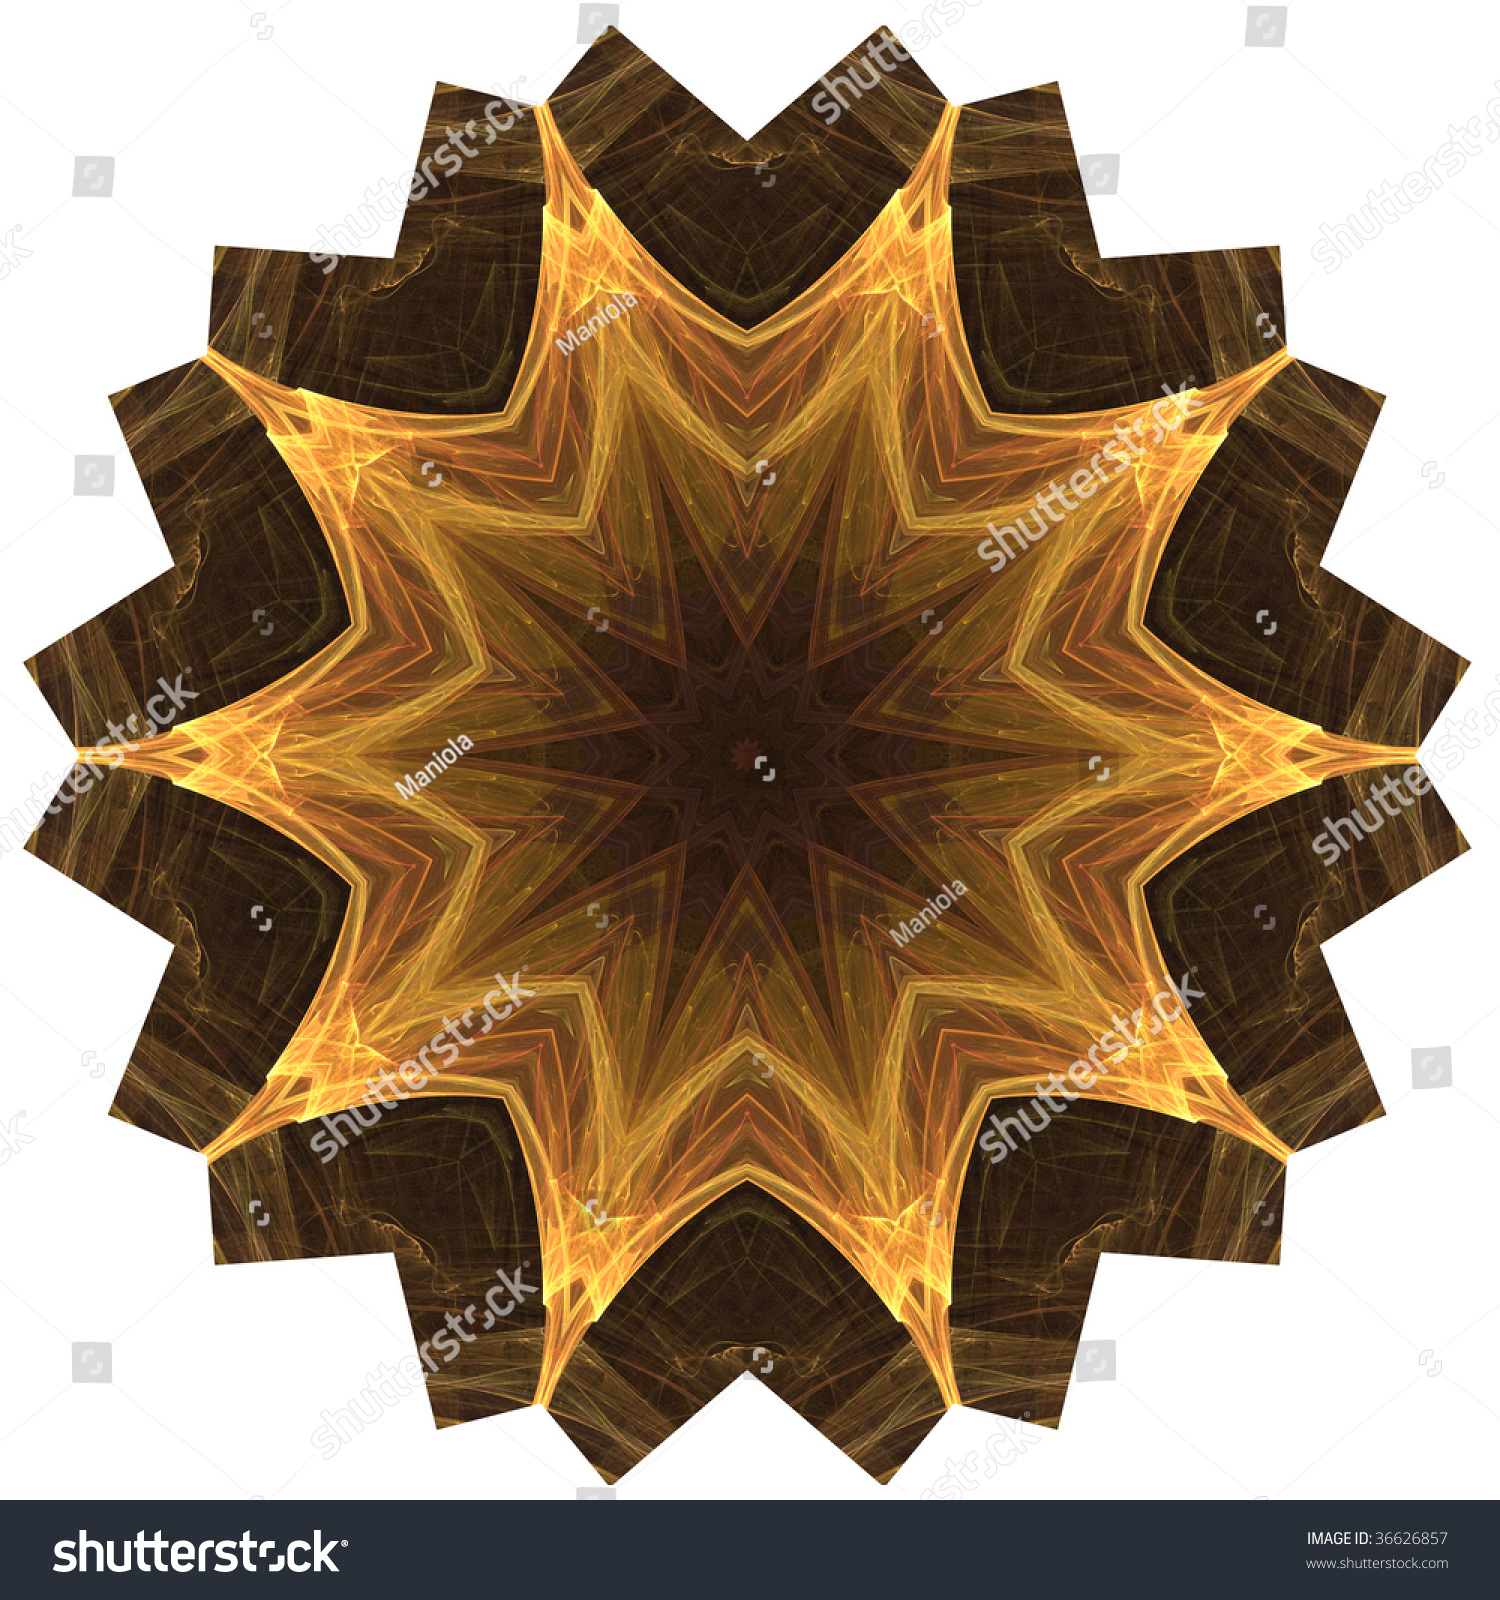 High Resolution Mandala Hindu Buddhist Symbol Stock Illustration